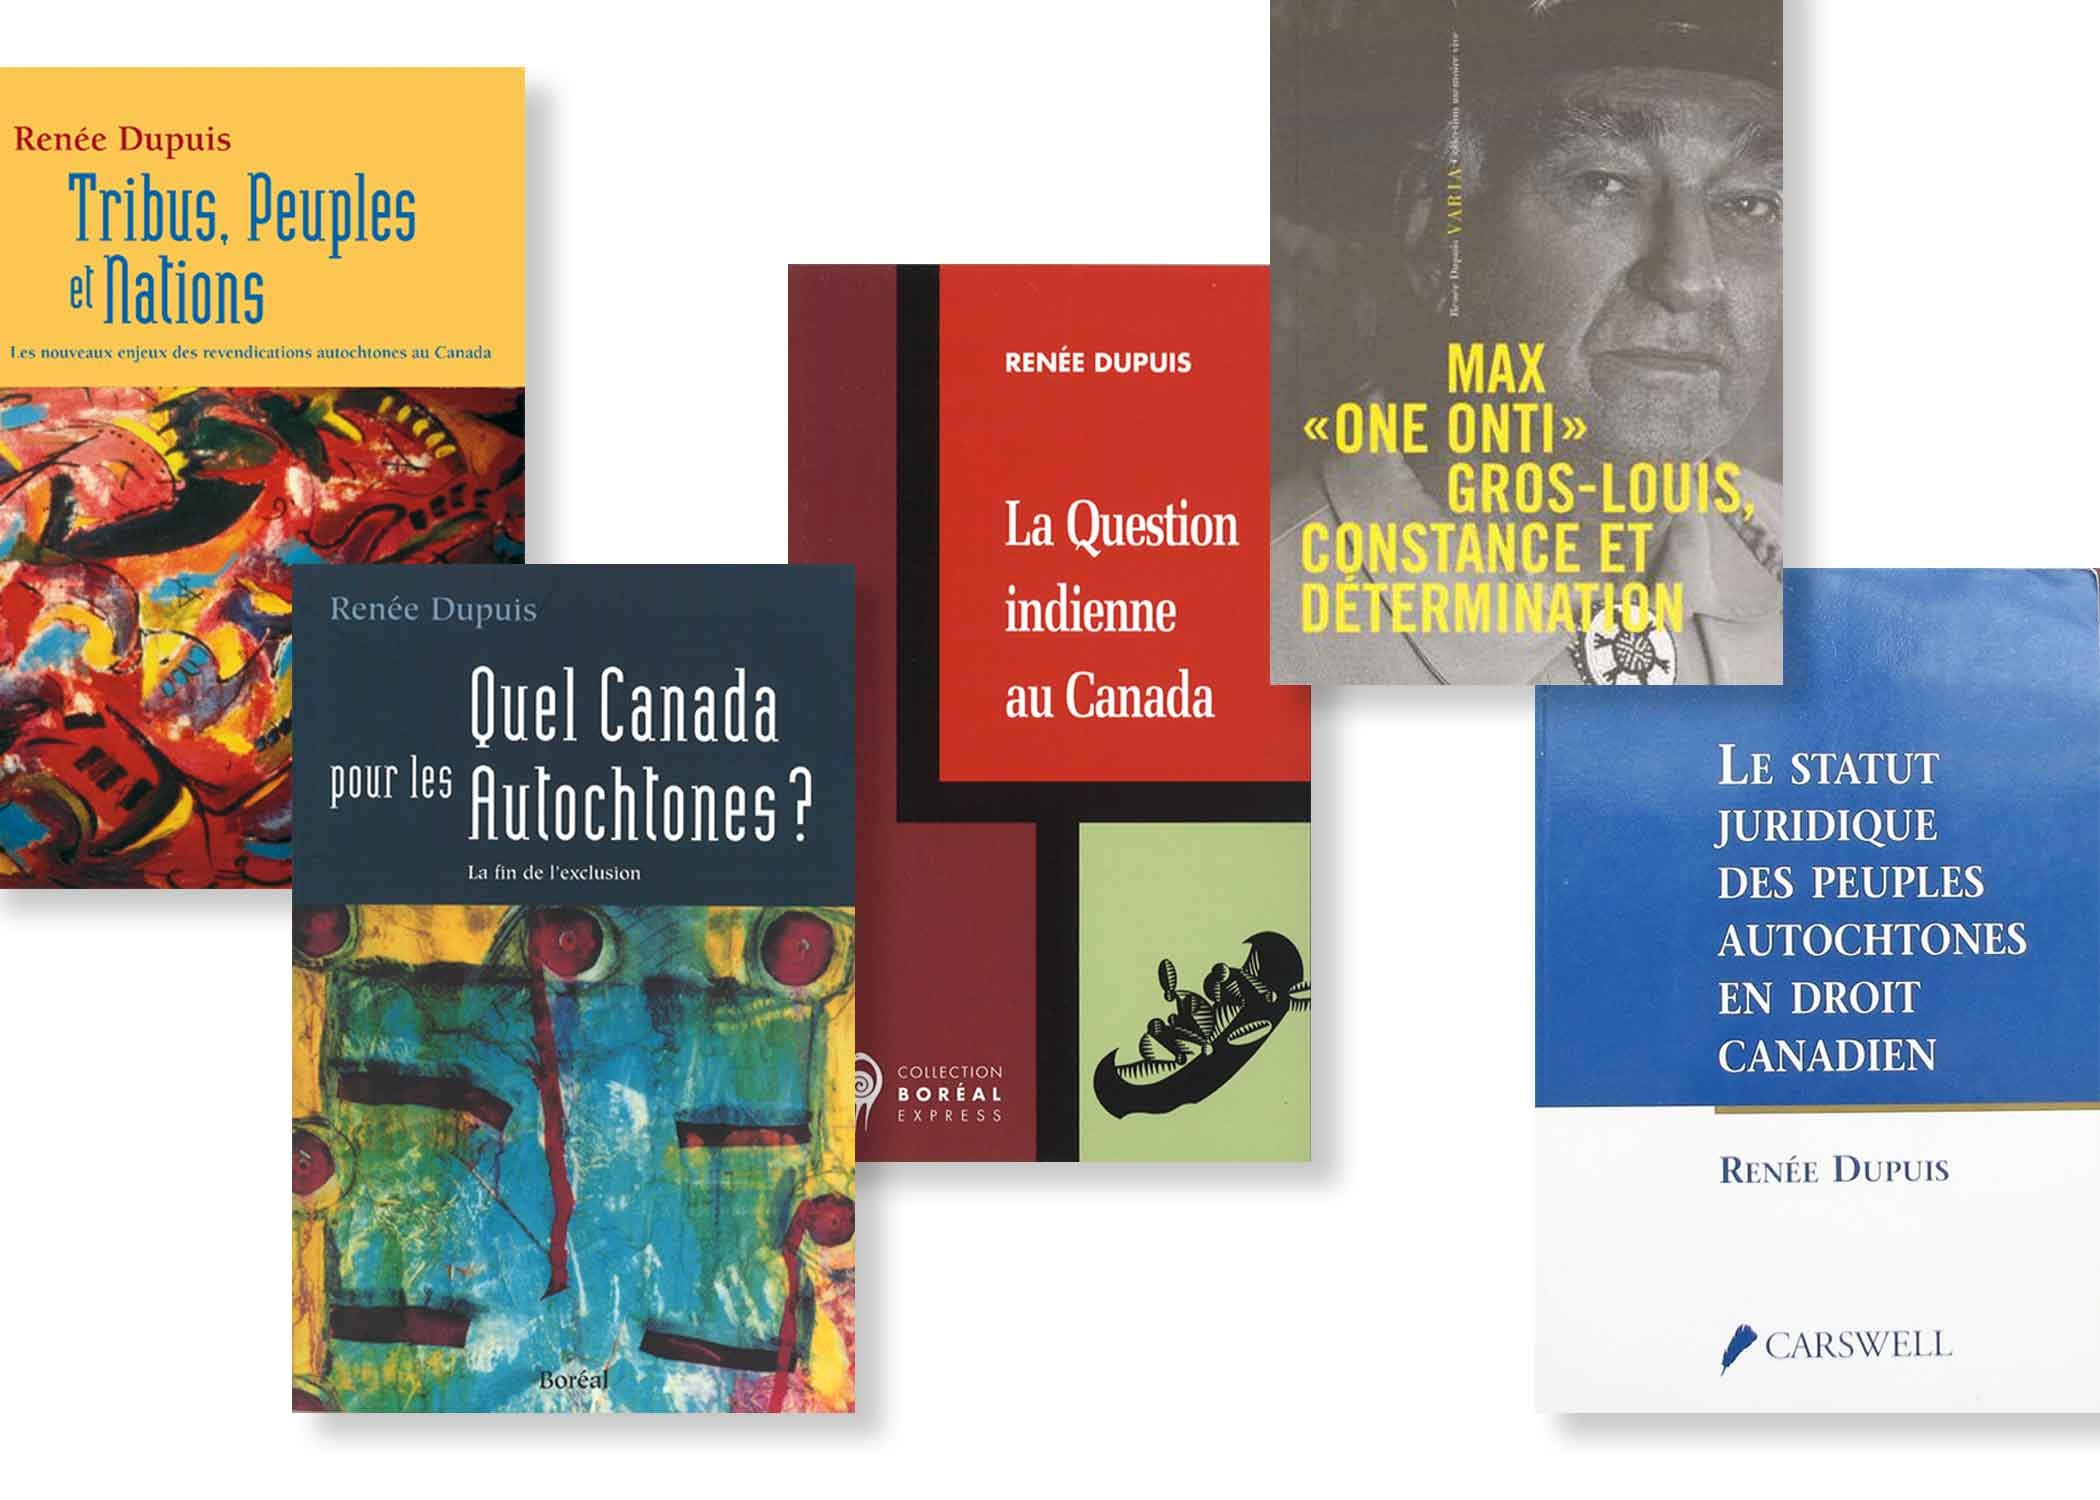 "In 2001, Senator Dupuis won the Governor General's Award for non-fiction for her book Quel Canada pour les Autochtones? La fin de l'exclusion (2001), which was later published in English as Justice for Canada's Aboriginal Peoples (2002). Senator Dupuis's other publications include Max ""One Onti"" Gros-Louis, Constance et détermination (2008), Tribus, Peuples et Nations (1997) and La question indienne au Canada (1991). Many of her articles have appeared in academic journals and popular magazines."